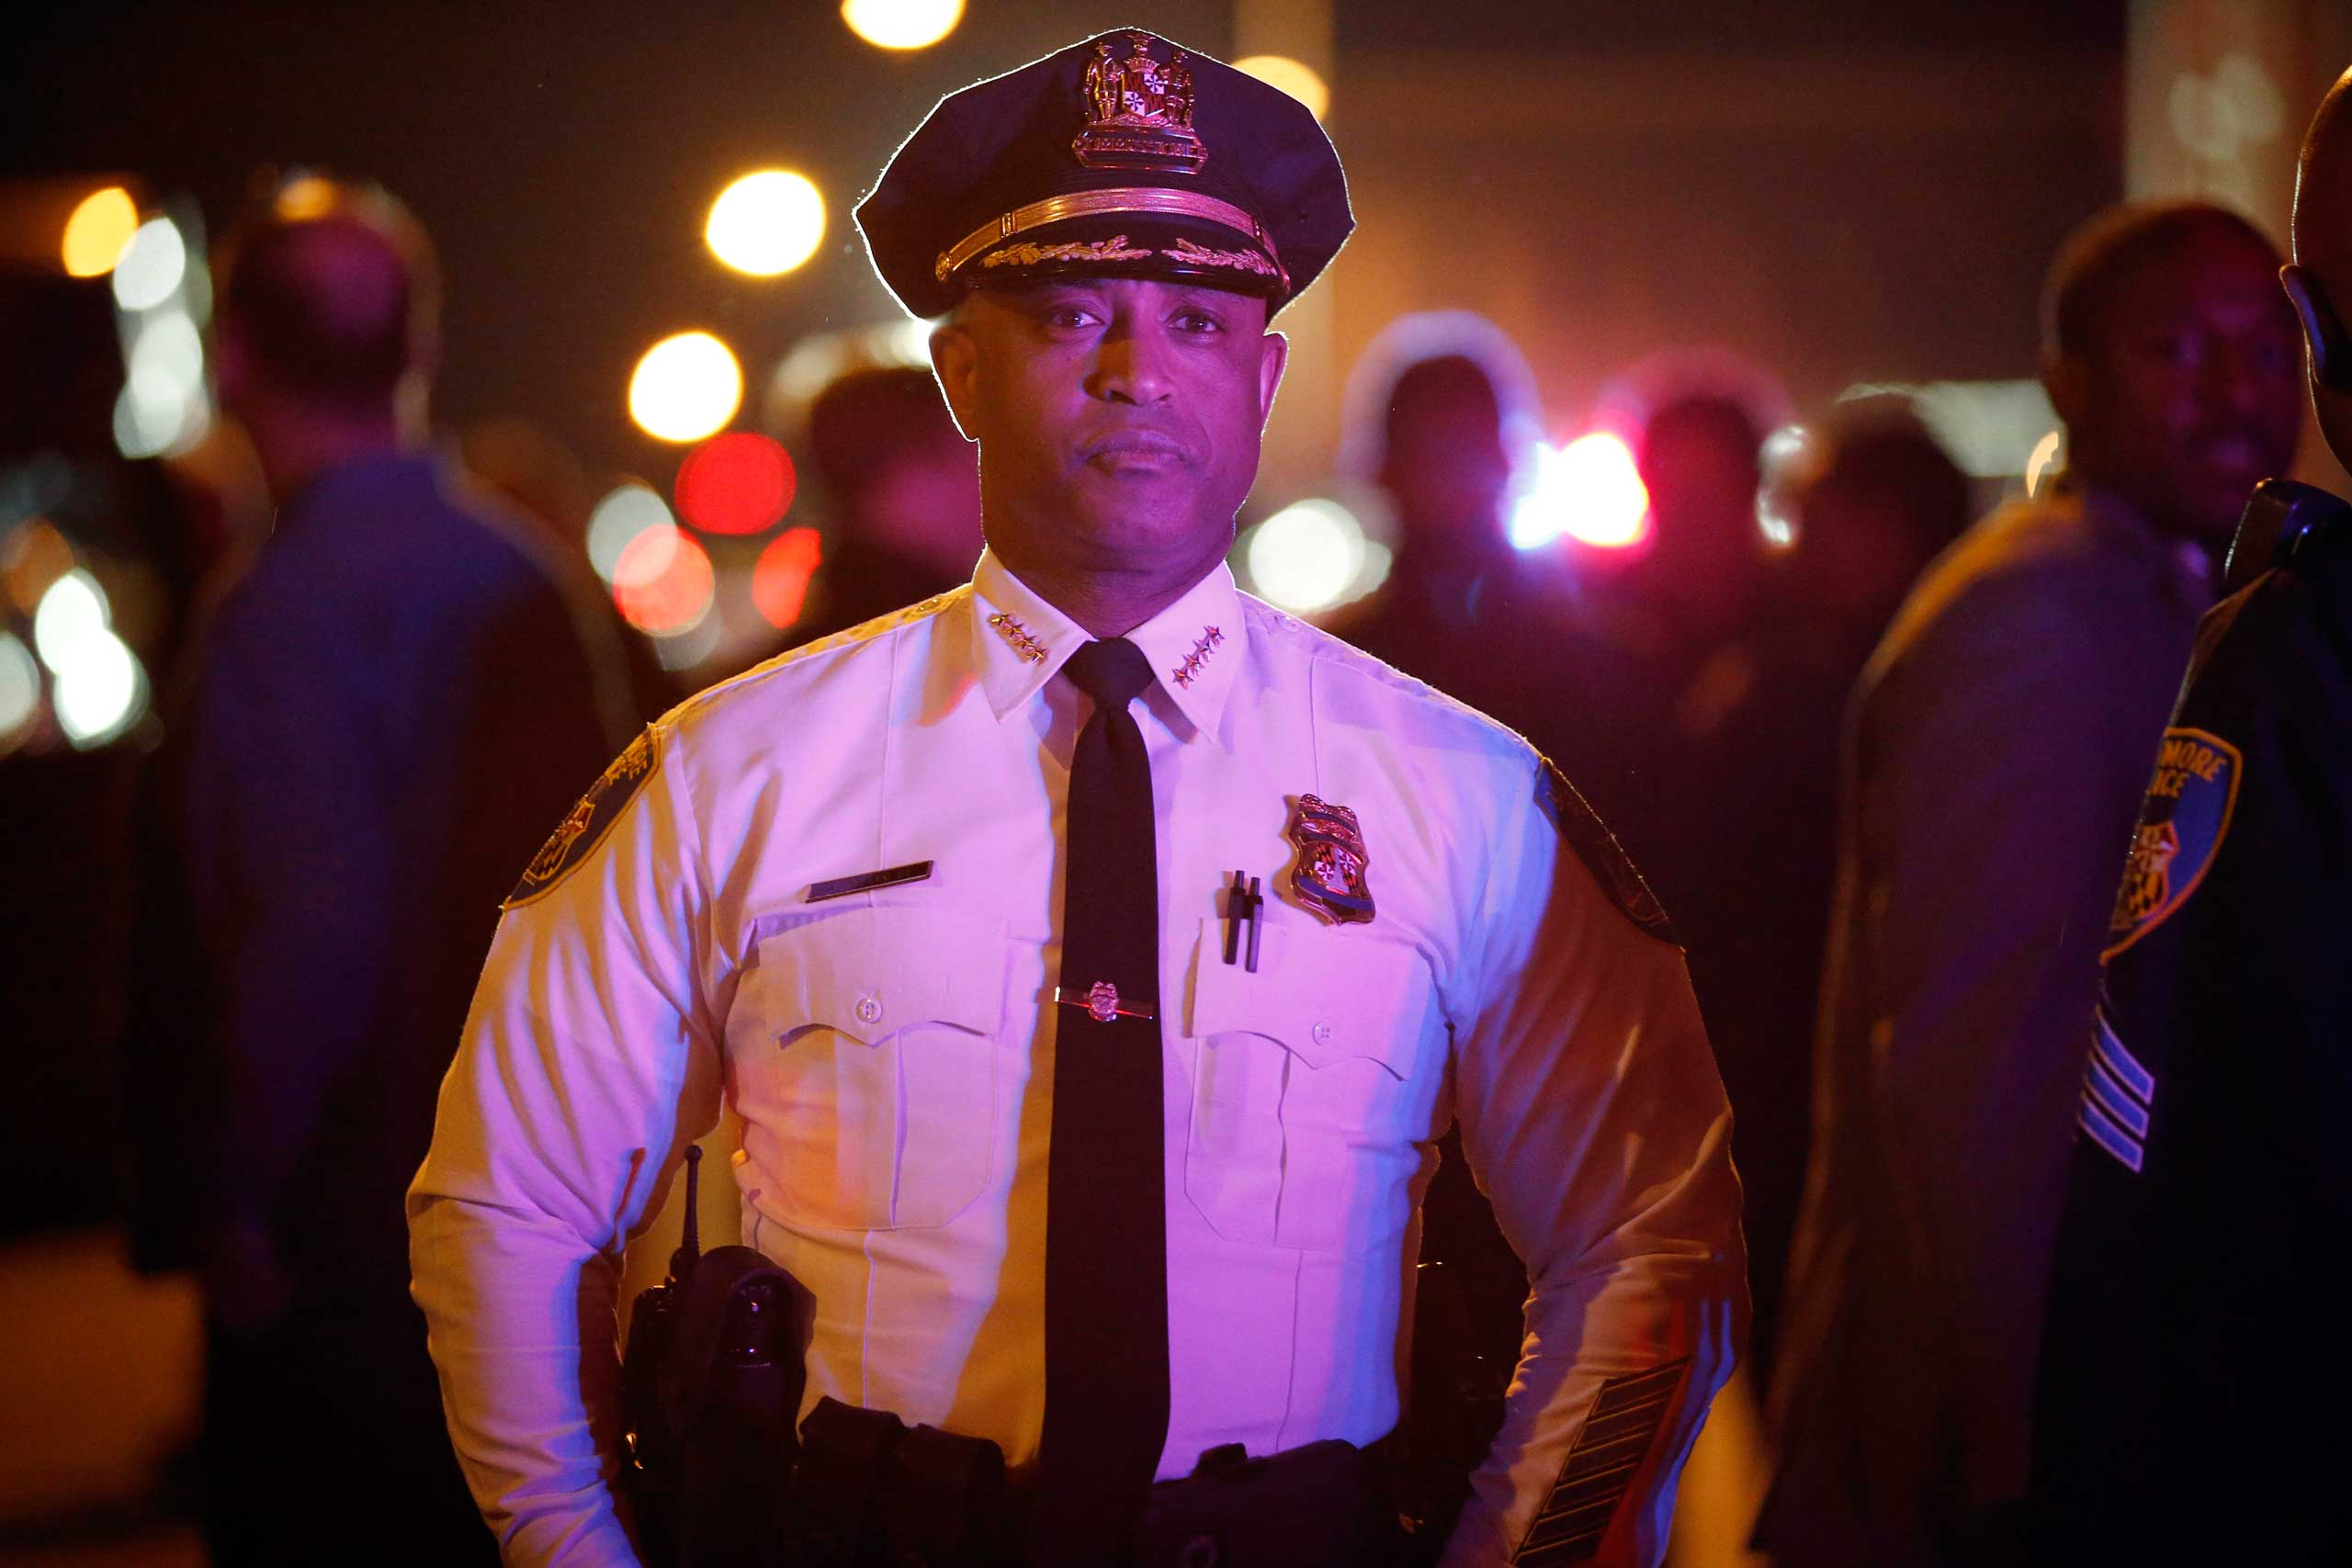 Baltimore Police Department Commissioner Anthony Batts.